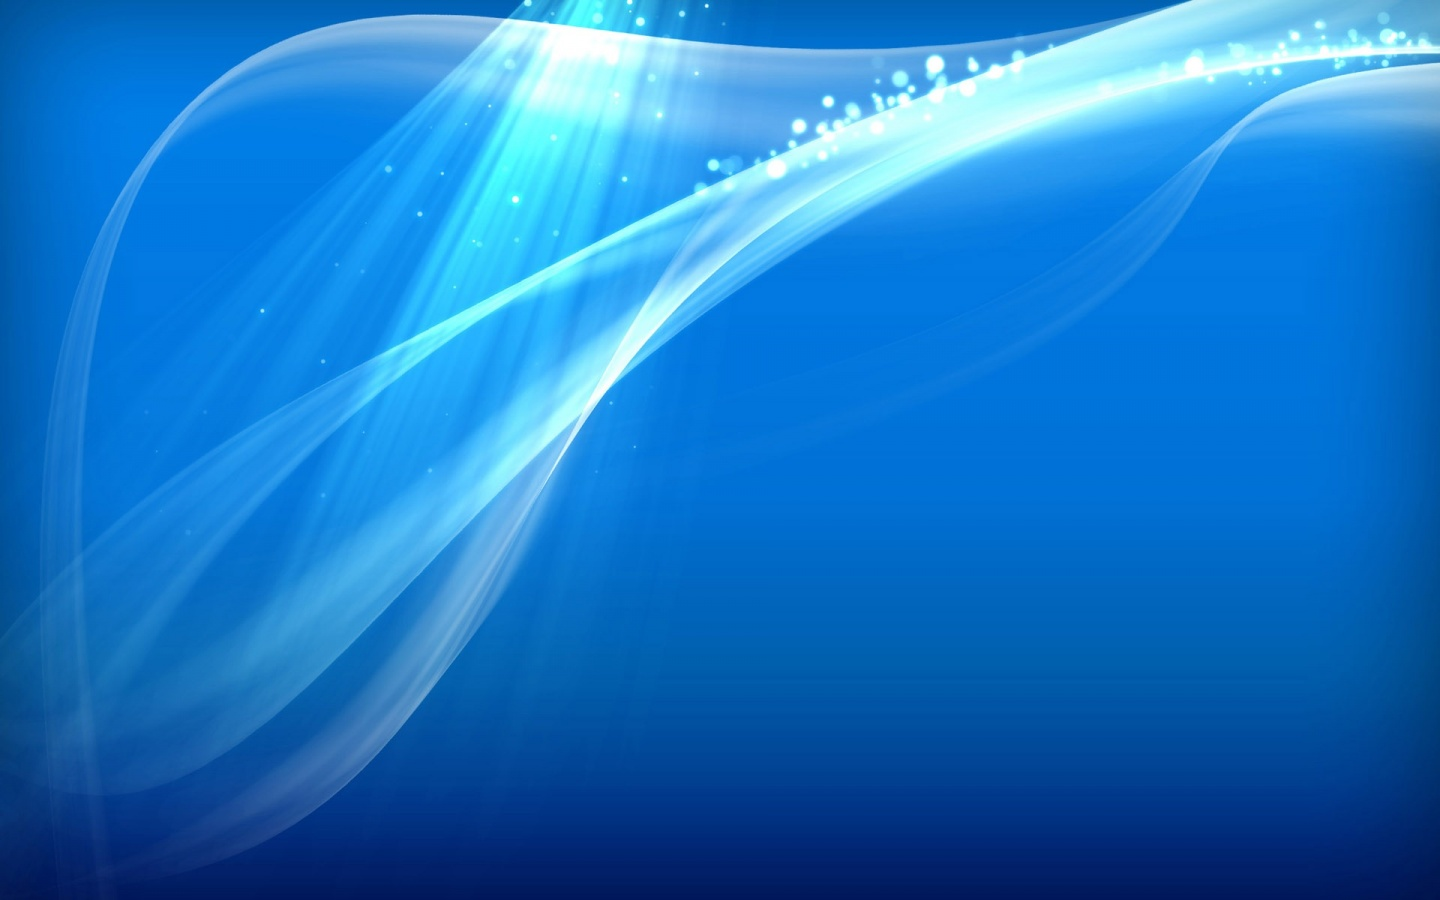 Blue Background Abstract Wallpapers HD Wallpapers 1440x900